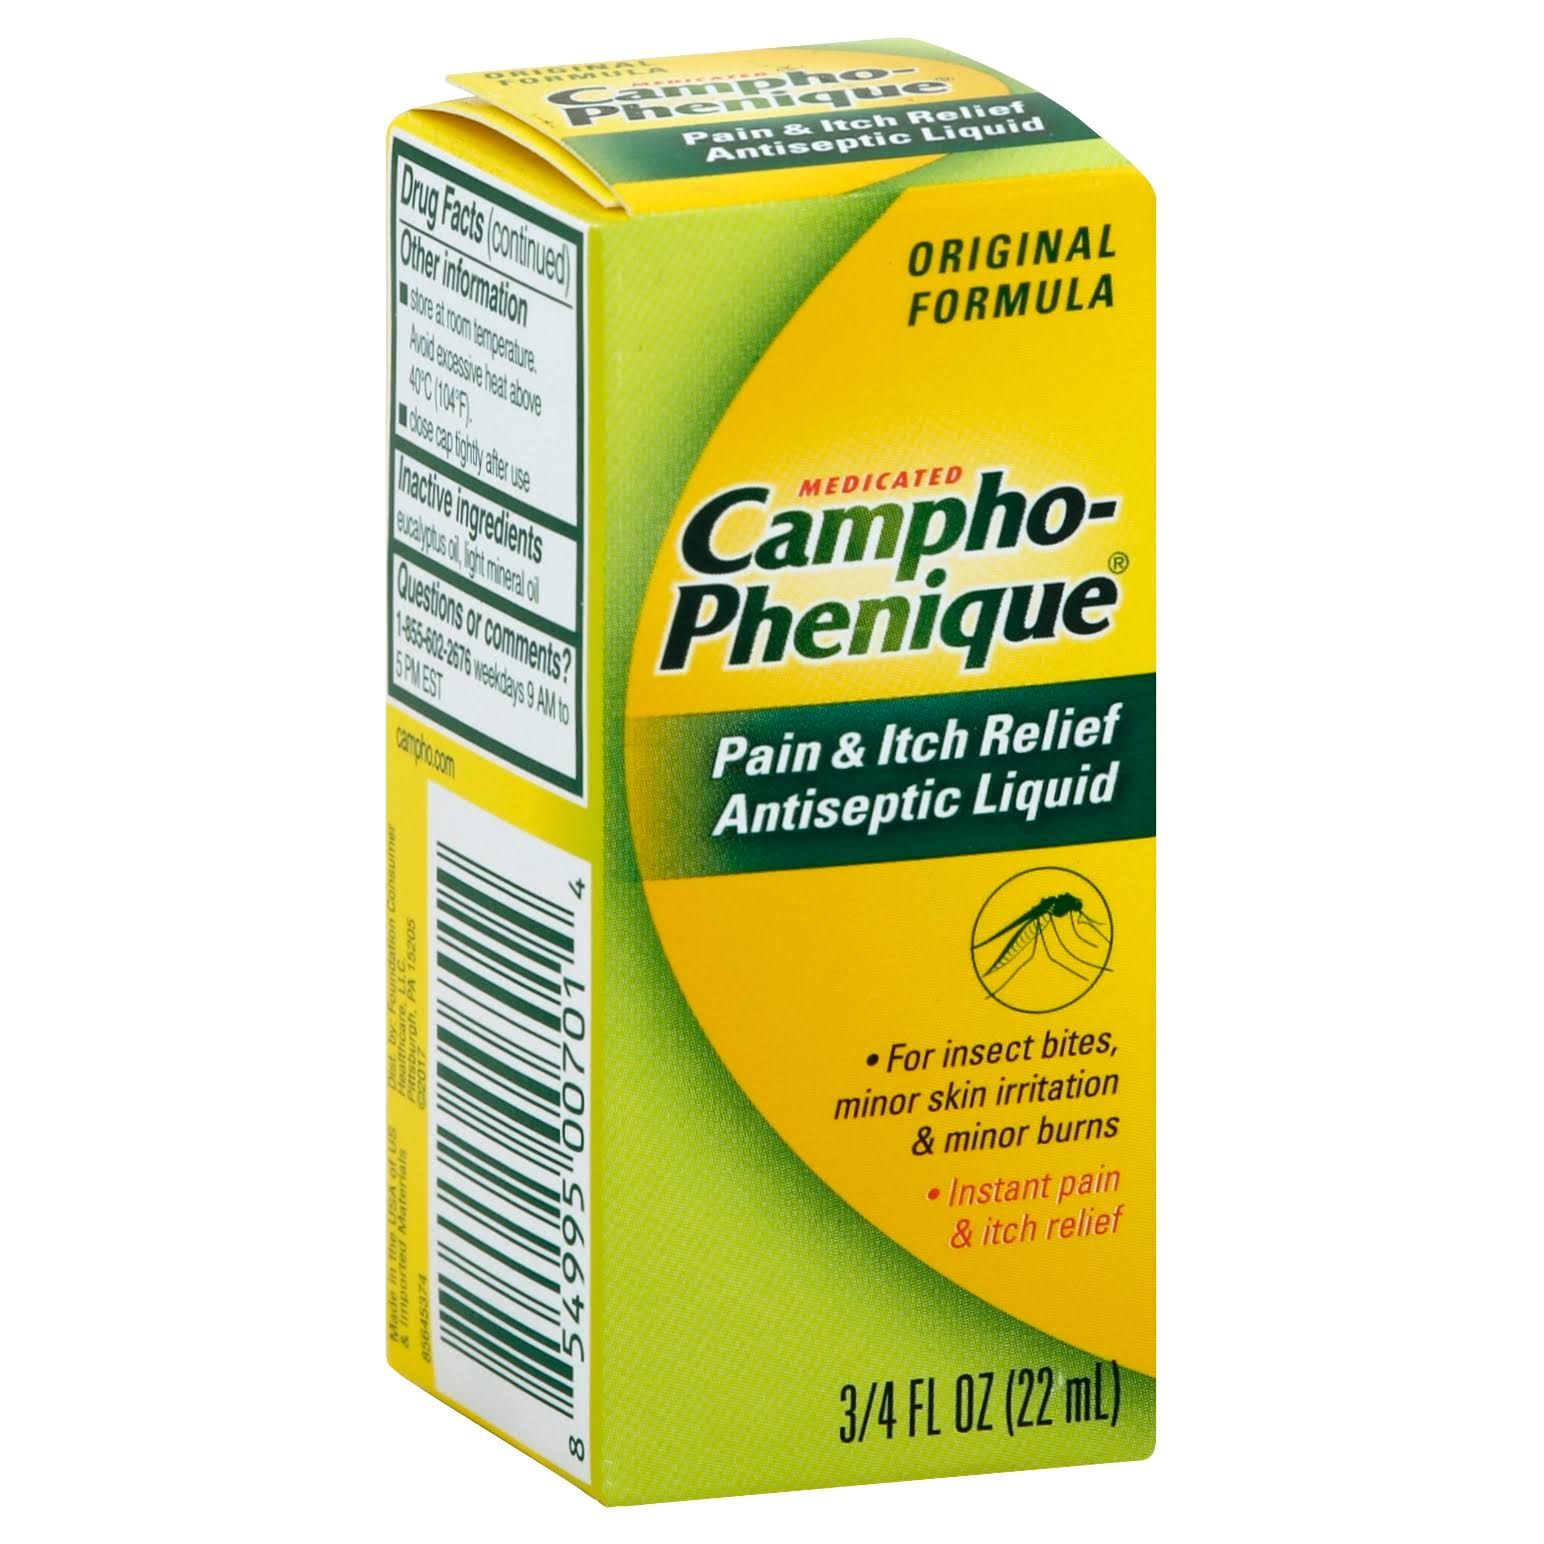 Campho-Phenique Pain & Itch Relief Antiseptic Liquid - 0.75oz